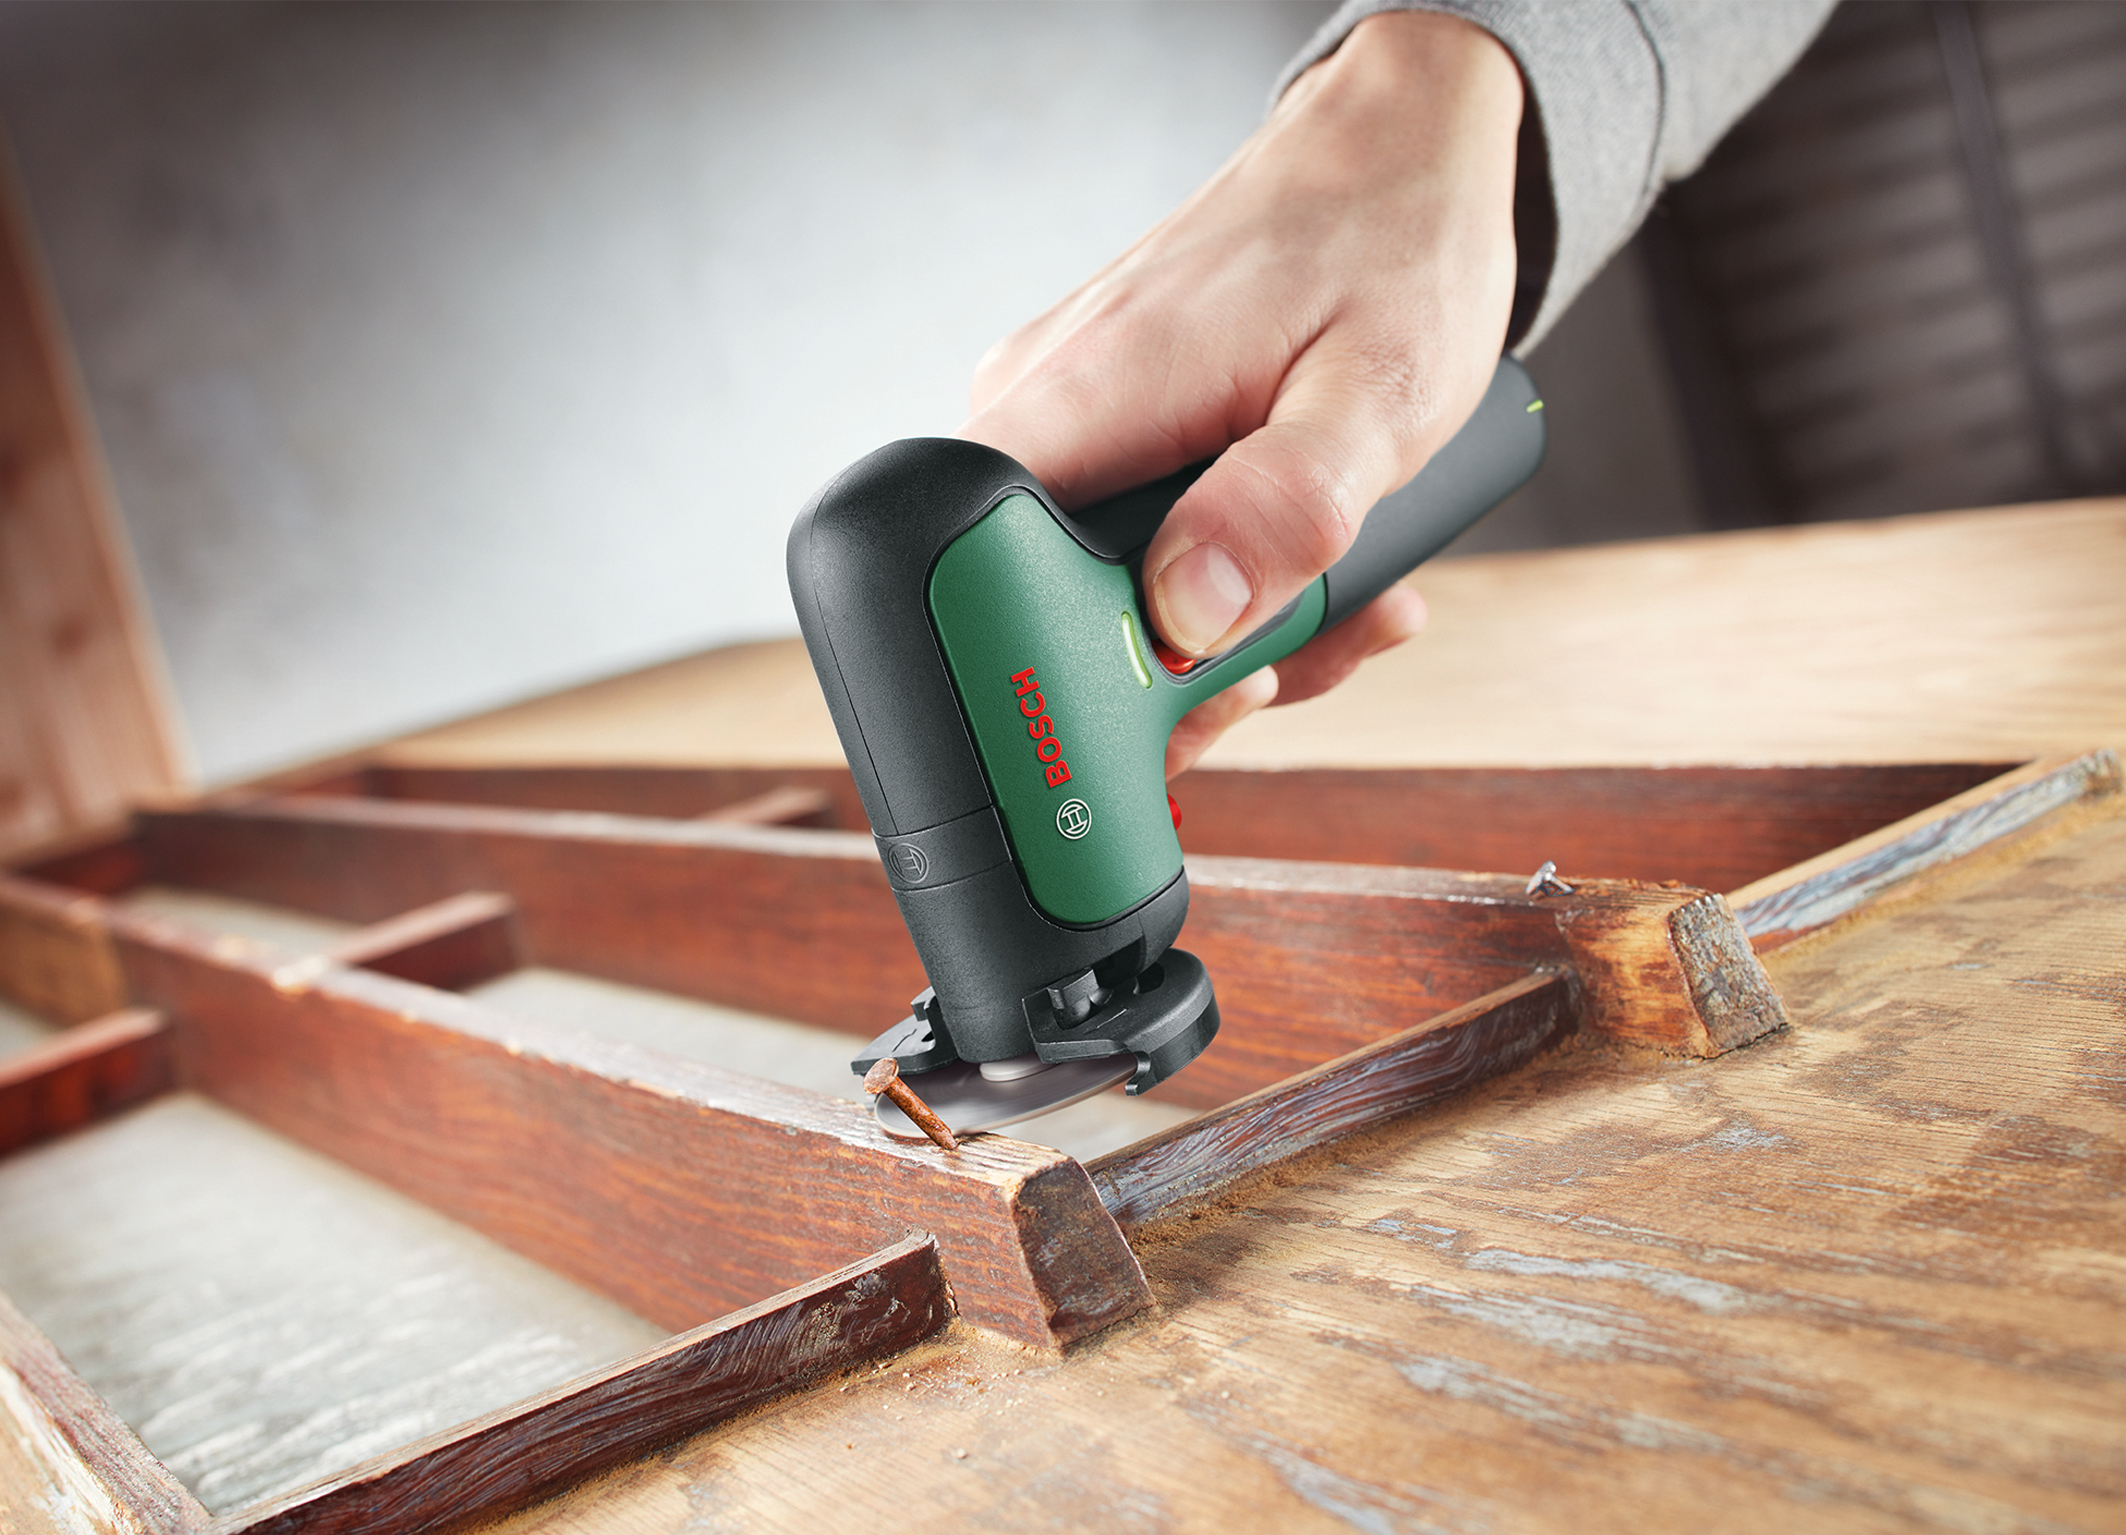 Light, compact, quiet: The EasyCut&Grind from Bosch